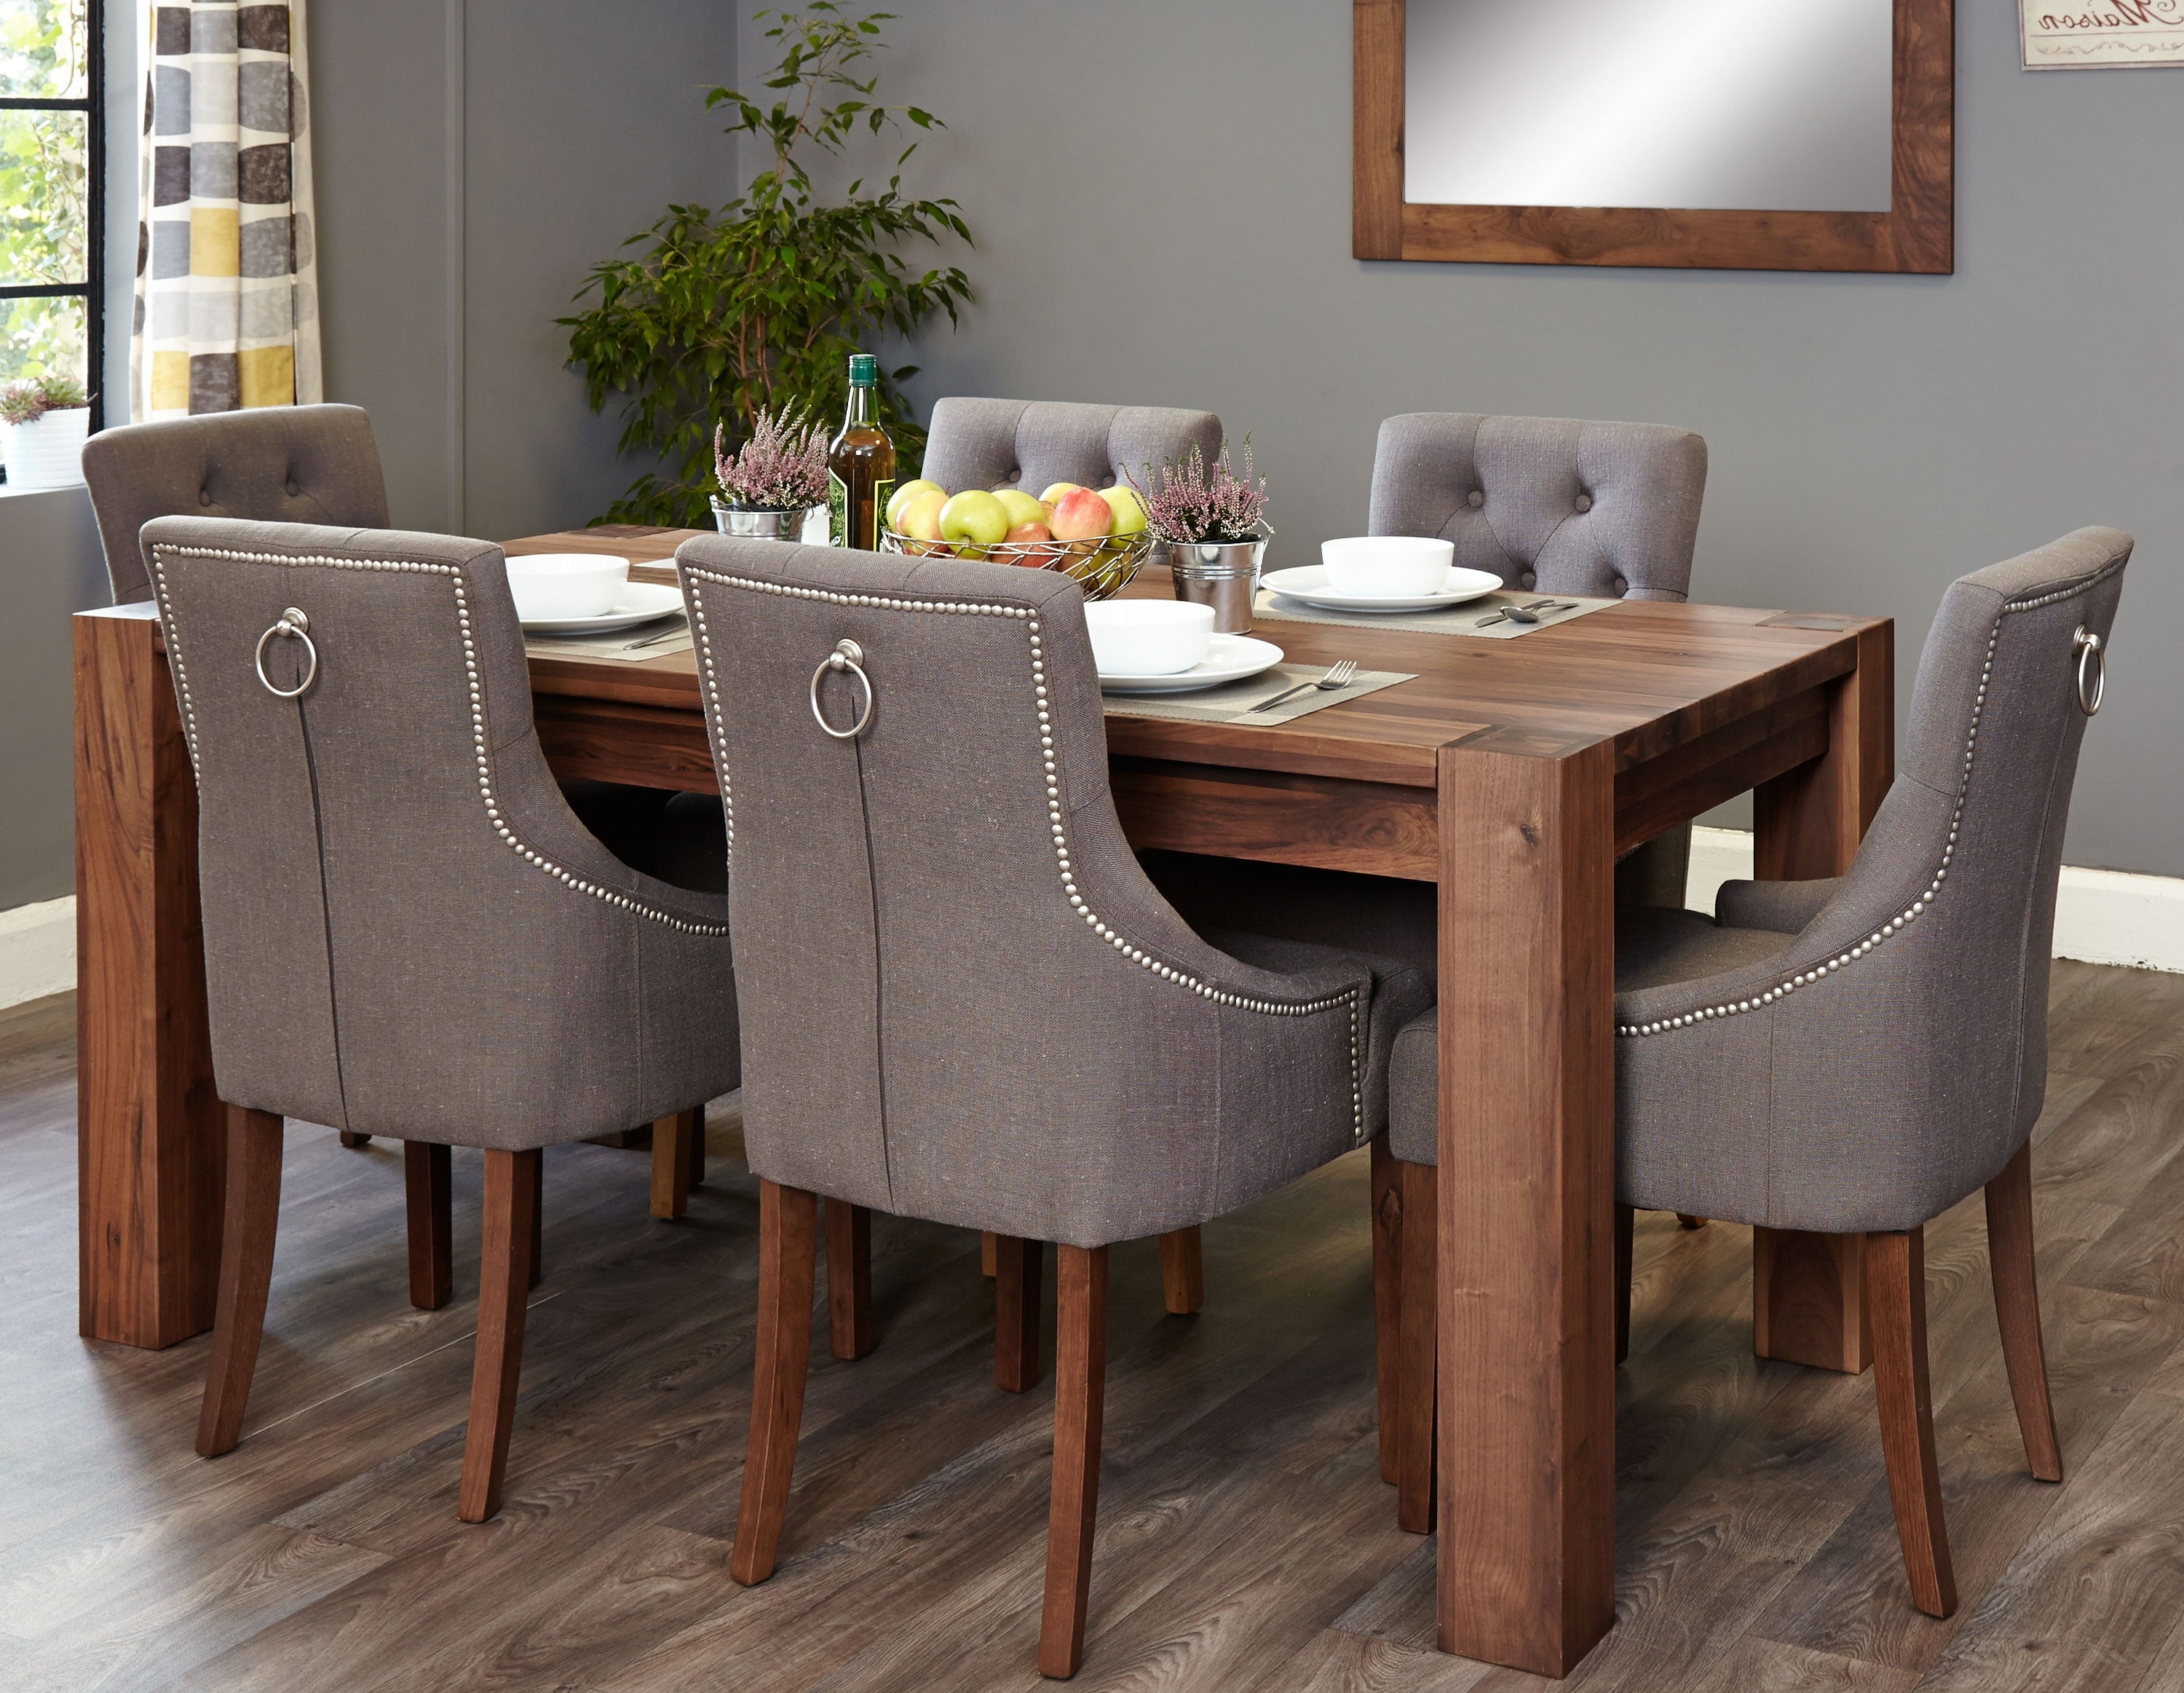 Create The Ultimate Entertaining Space With Our New Range Of Walnut Pertaining To Most Recent Oak Dining Tables And Fabric Chairs (Gallery 23 of 25)